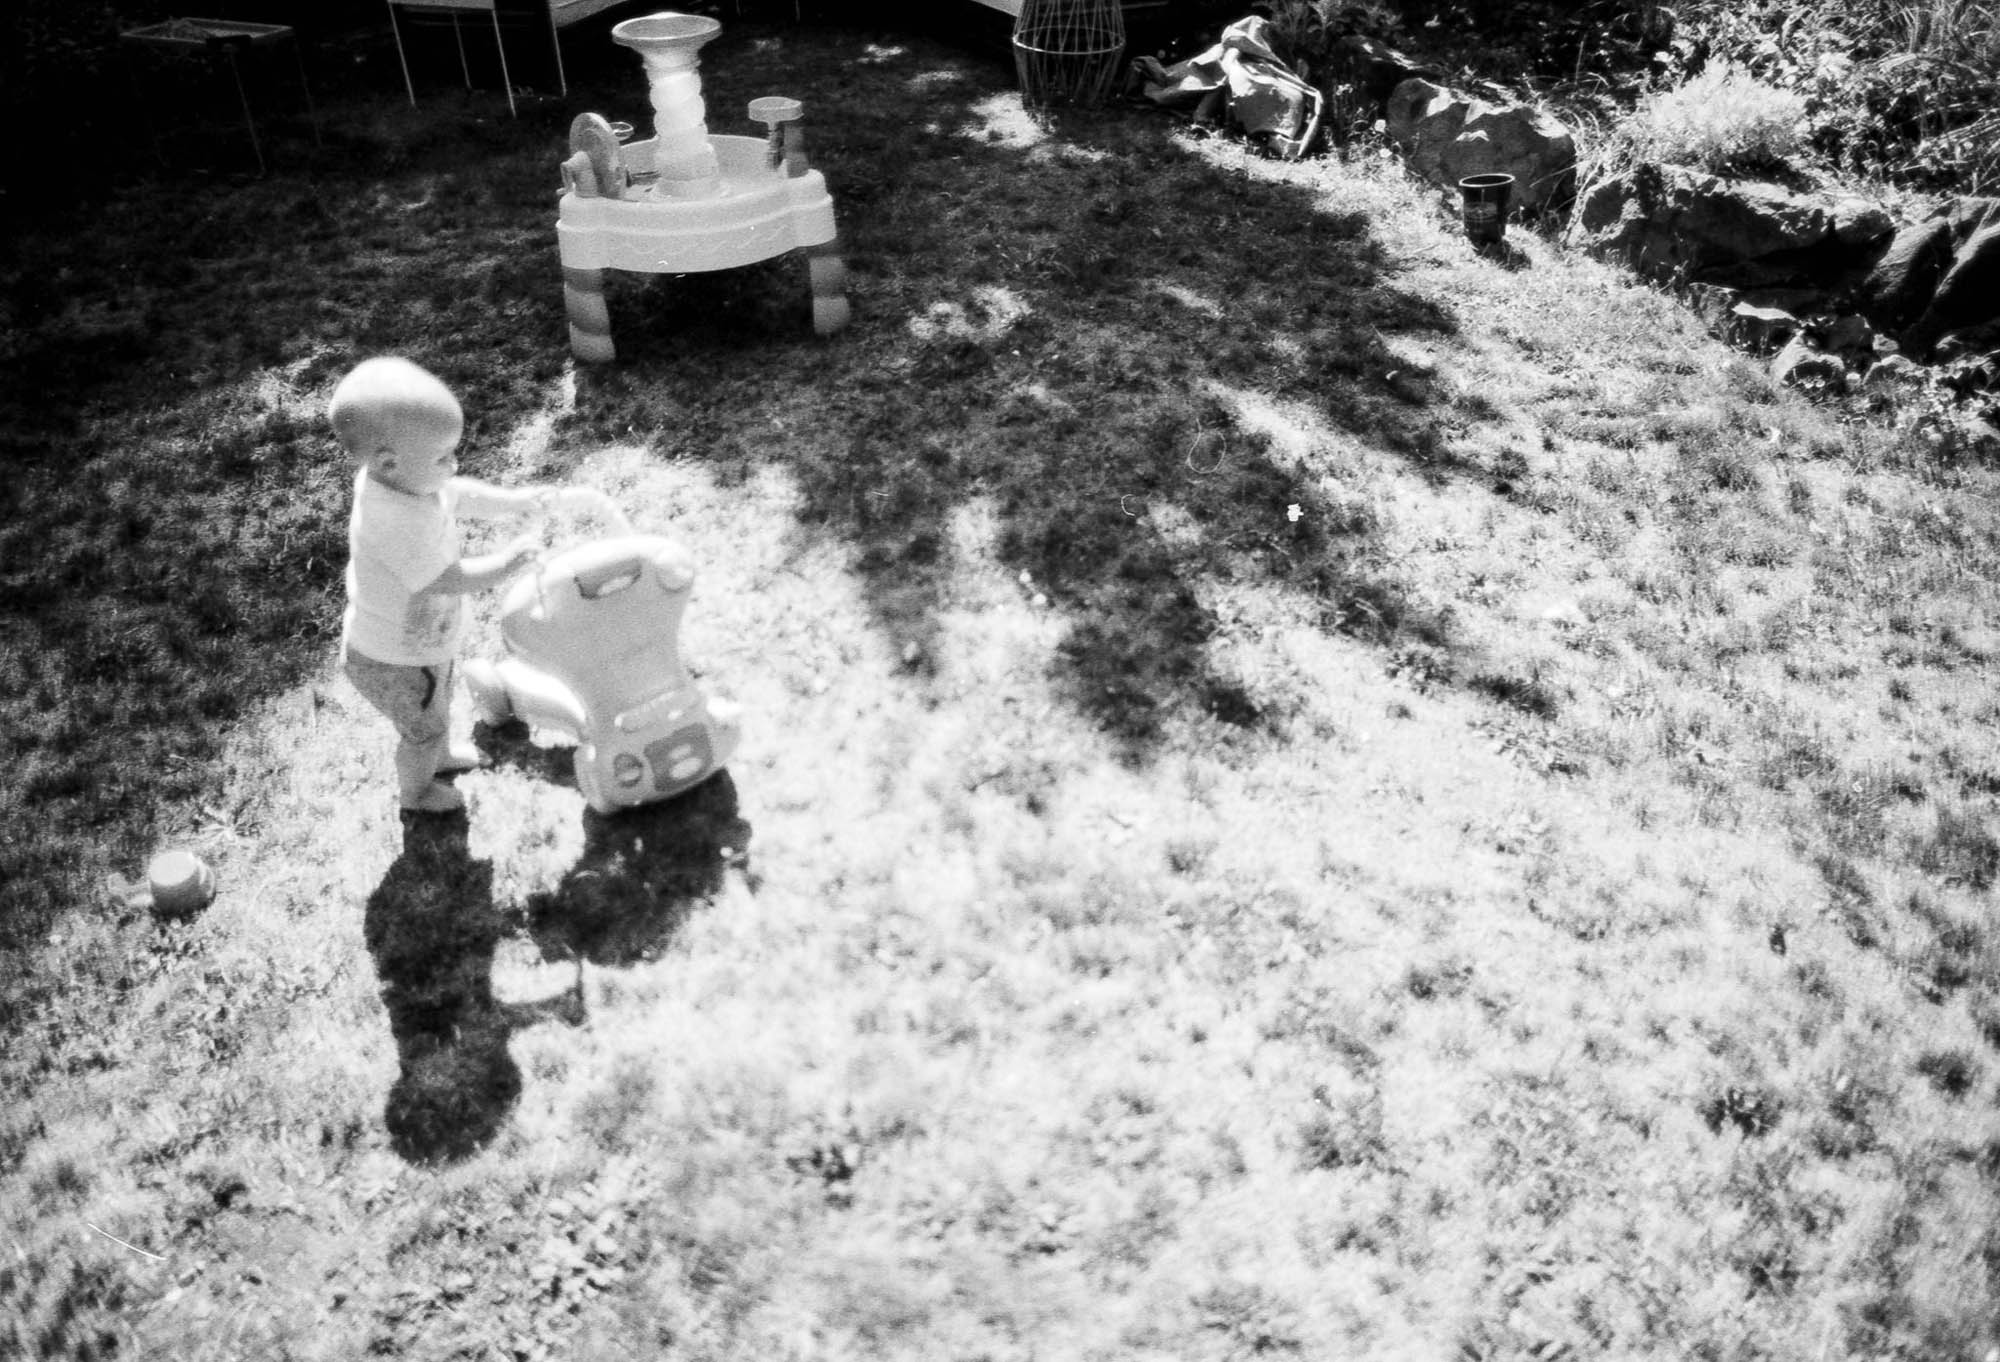 Child plays in the backyard. This shows the latitude that this film holds. It was a bright day and you can see both highlight and shadow detail. Canon EOS 3, Canon 24mm f1.4 lens